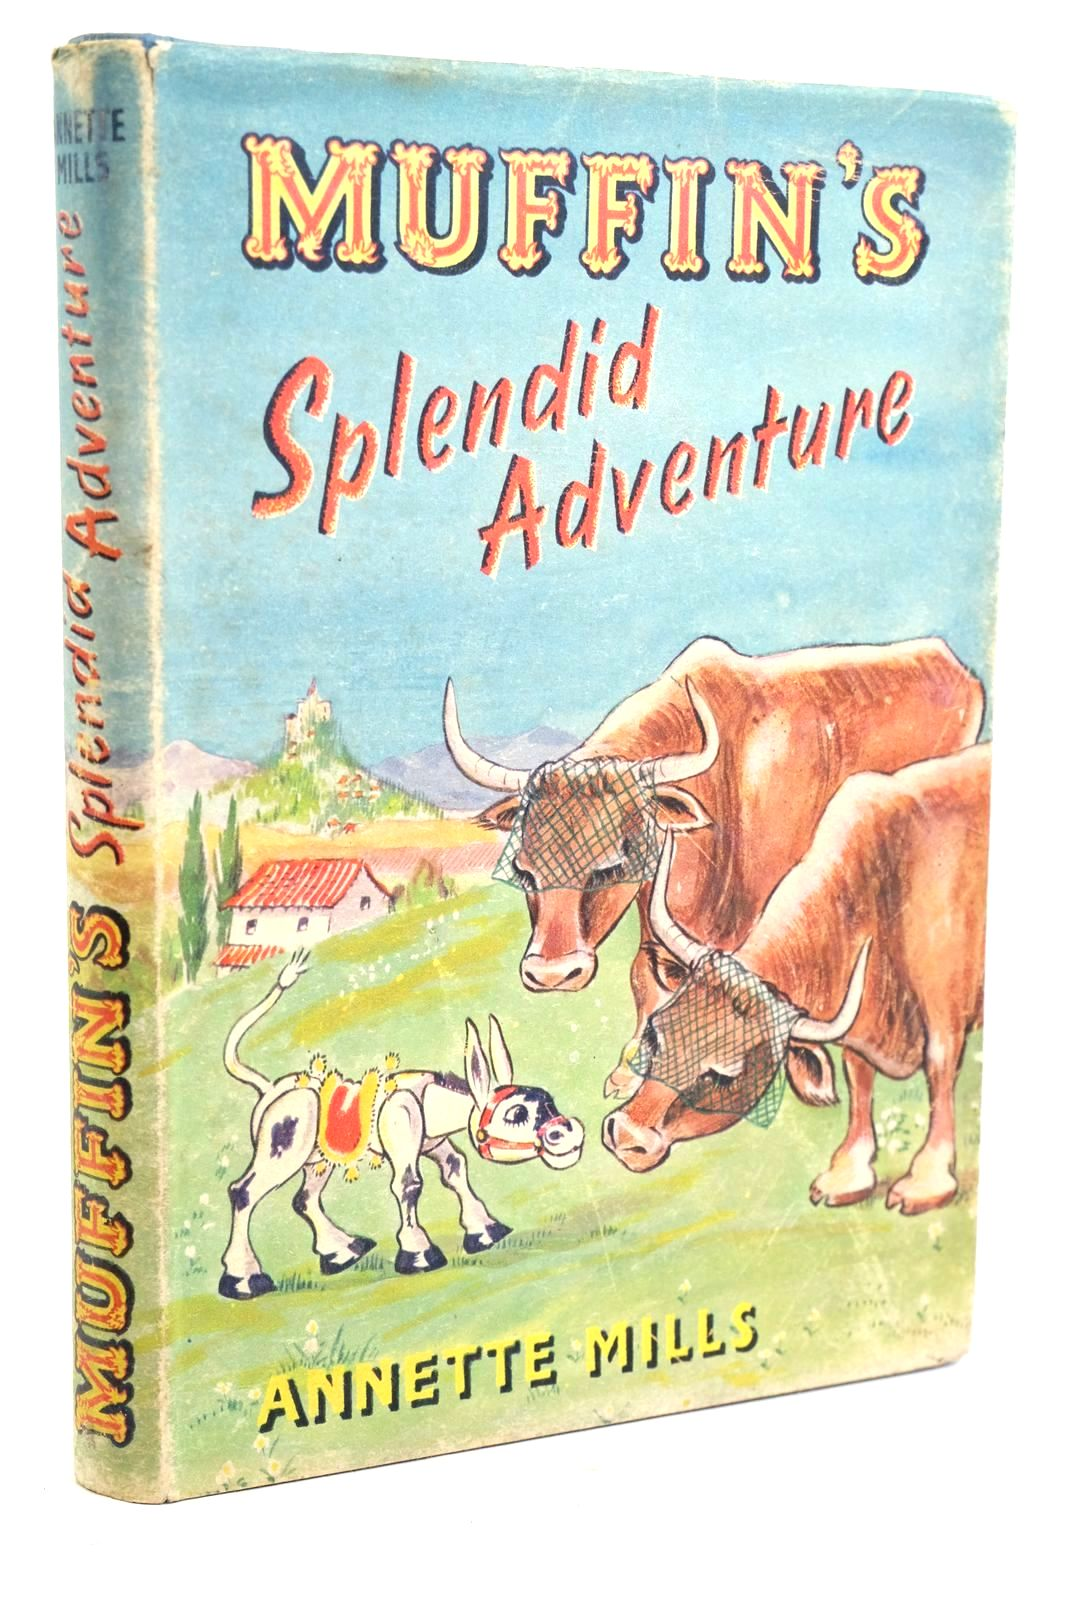 Photo of MUFFIN'S SPLENDID ADVENTURE written by Mills, Annette illustrated by Blake, Molly published by University of London Press Ltd. (STOCK CODE: 1320436)  for sale by Stella & Rose's Books